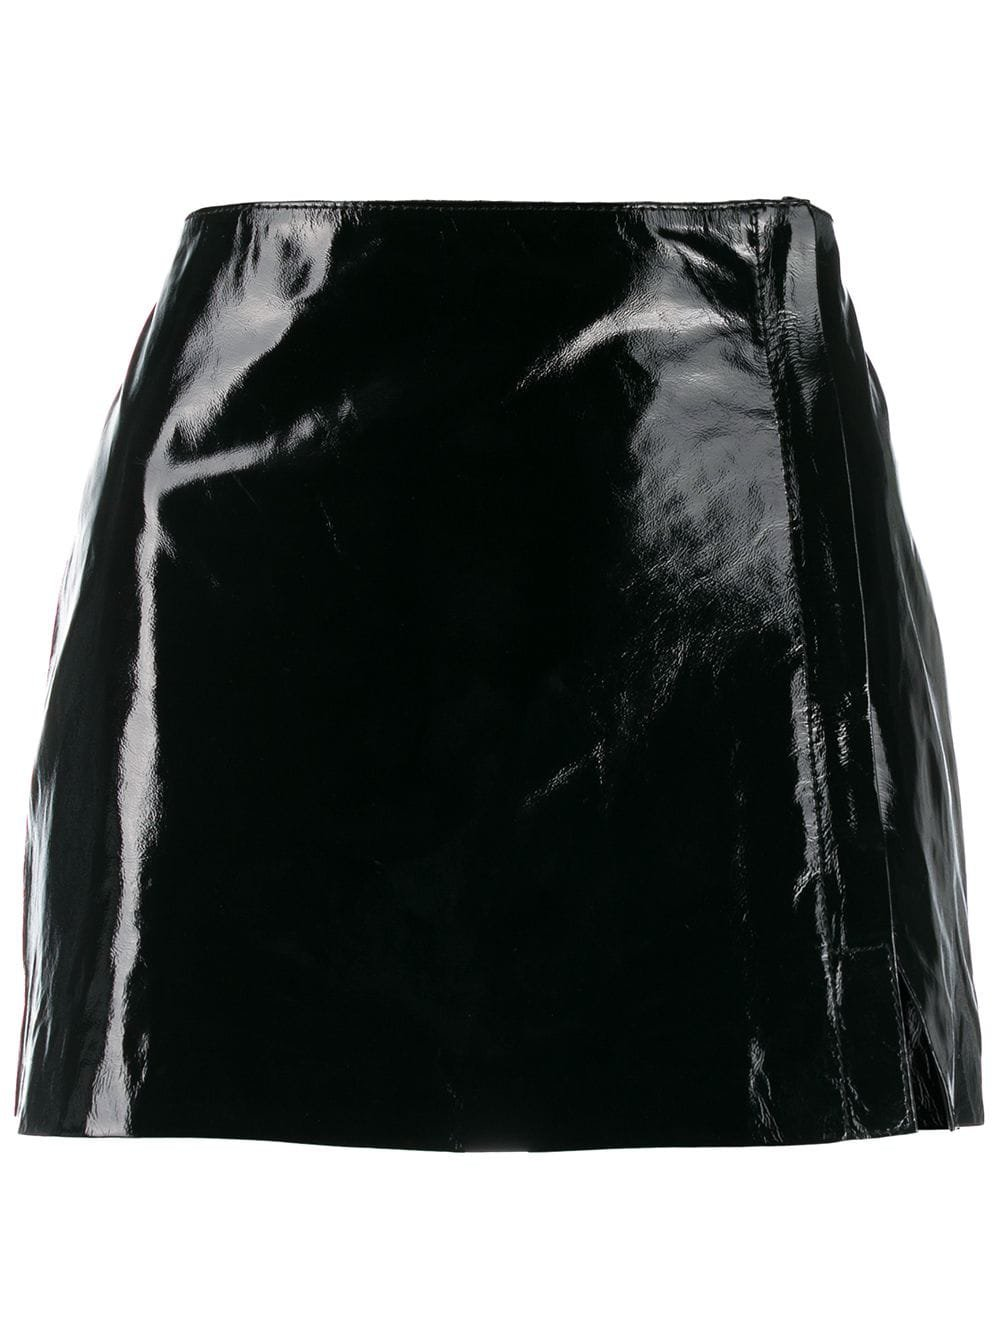 P.A.R.O.S.H. short leather skirt £256 - Shop Online. Same Day Delivery in London